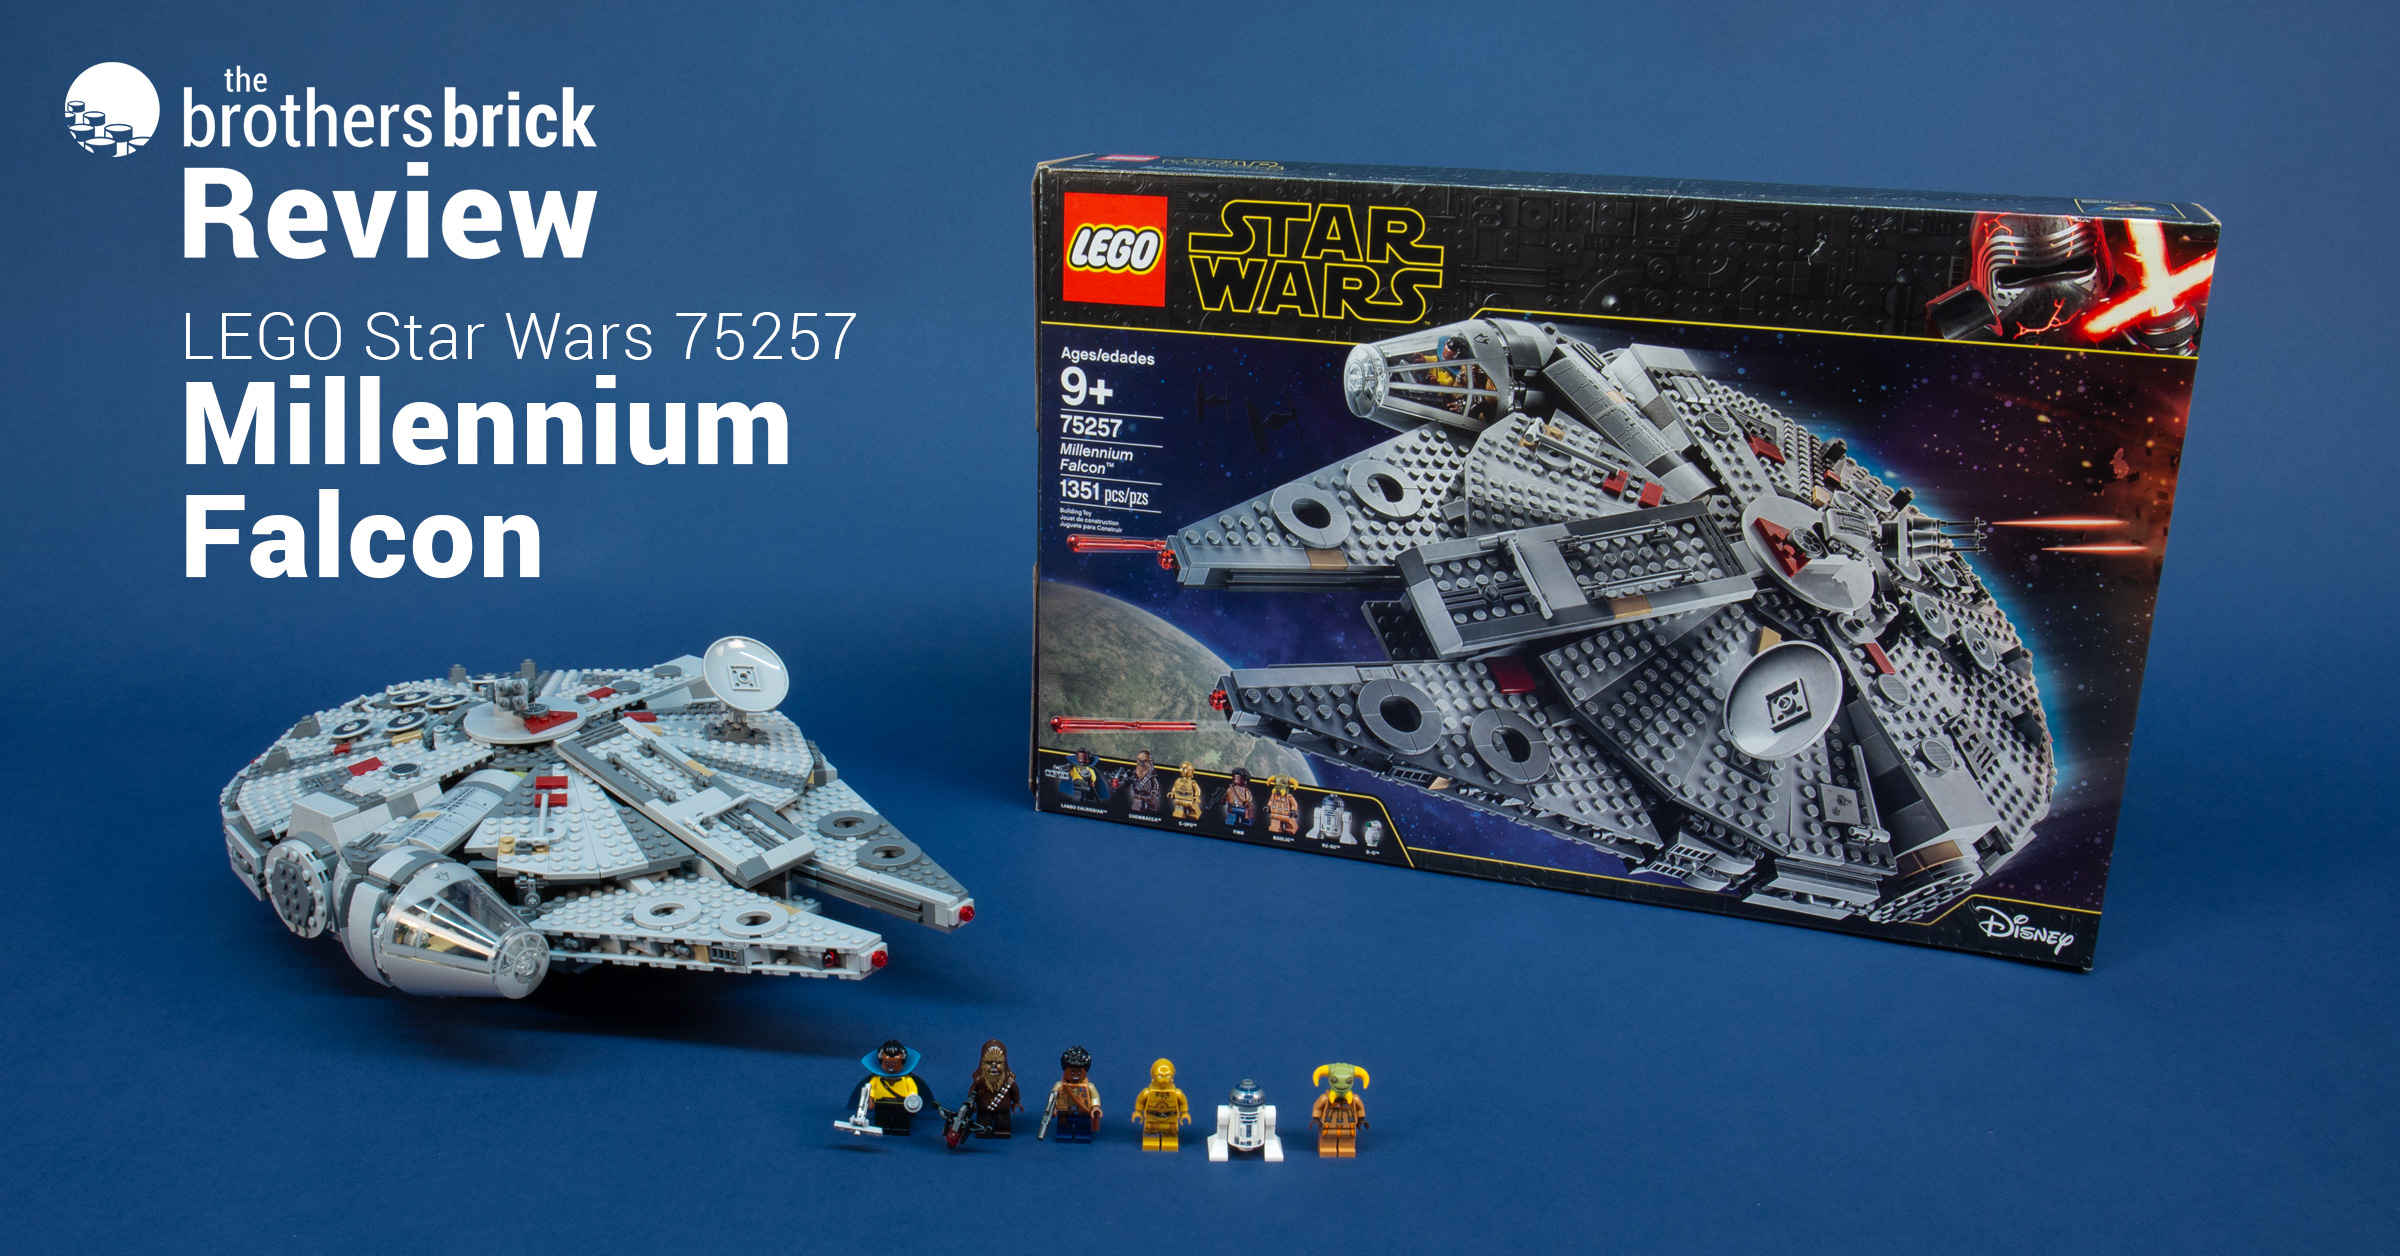 LEGO Star Wars 75257 Millennium Falcon from The Rise of Skywalker [Review]